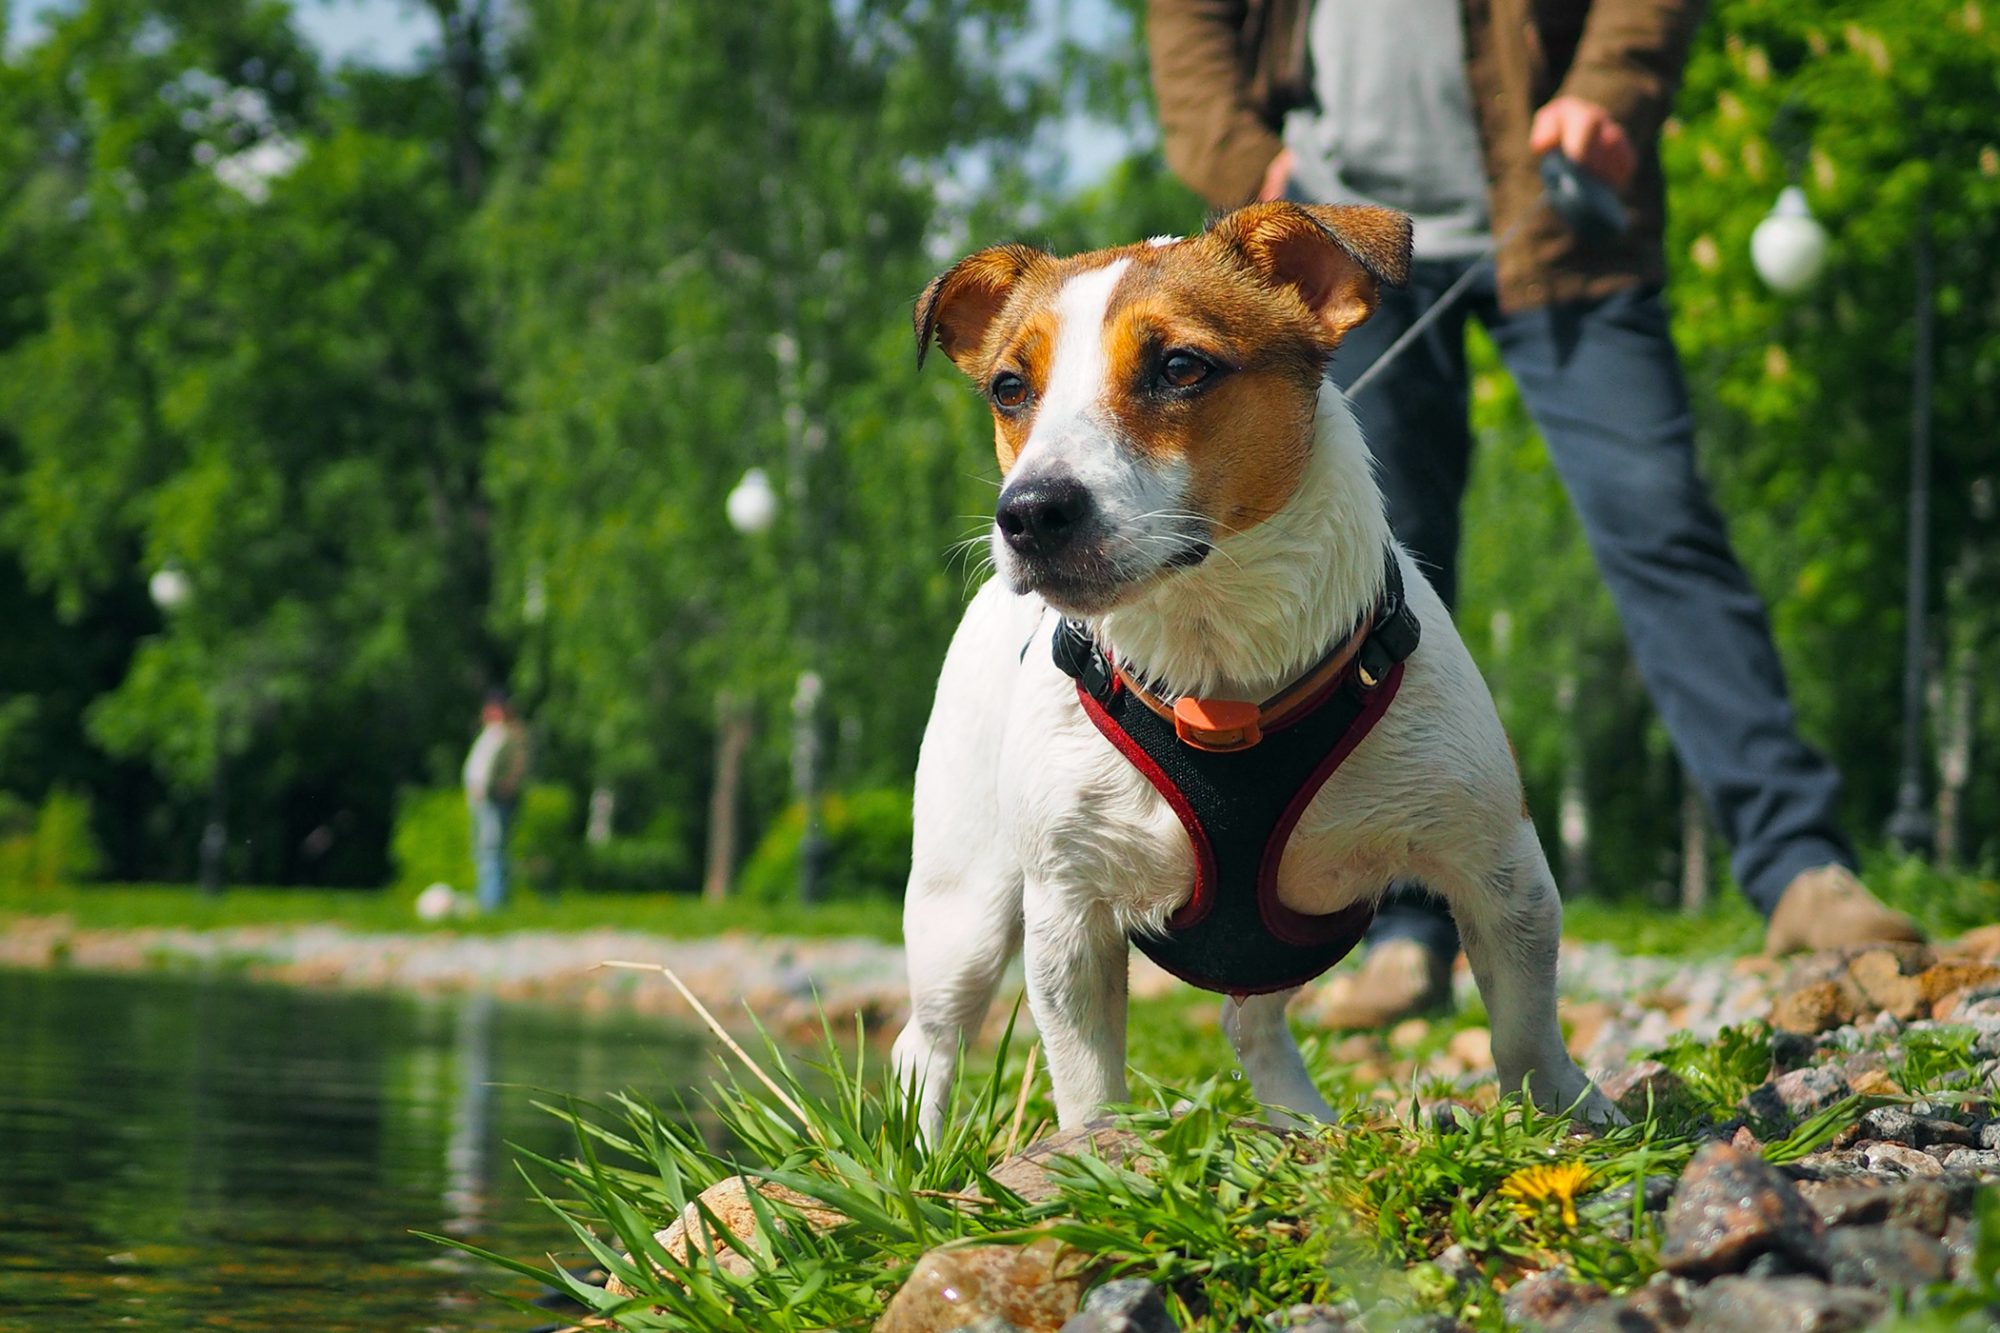 Jack Russell Terrier in a harness and on a leash on walk at park